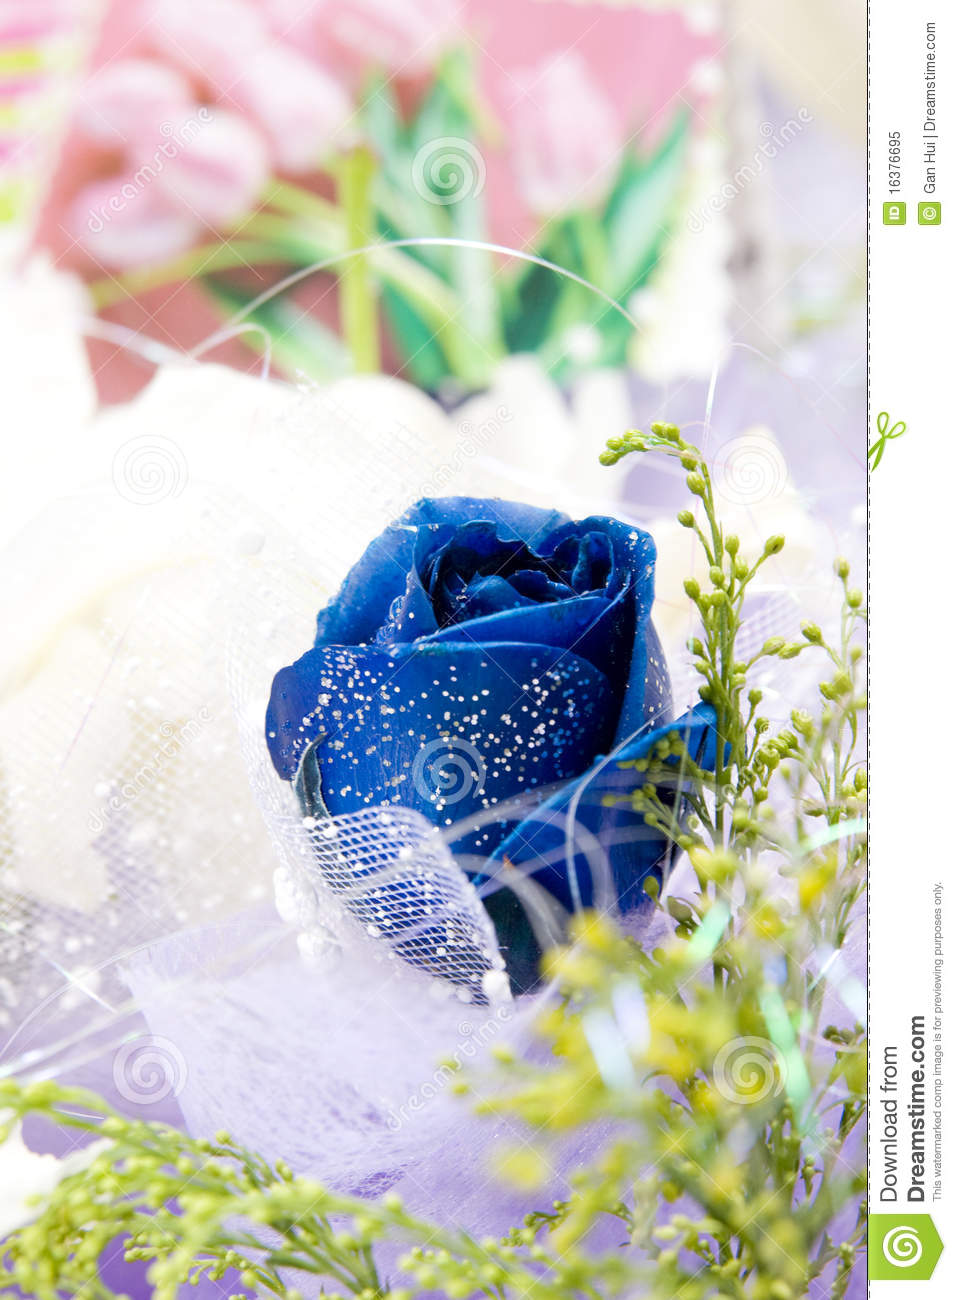 Blue rose in gift flowers stock image image of blossom 16376695 blue rose in gift flowers royalty free stock photo negle Image collections